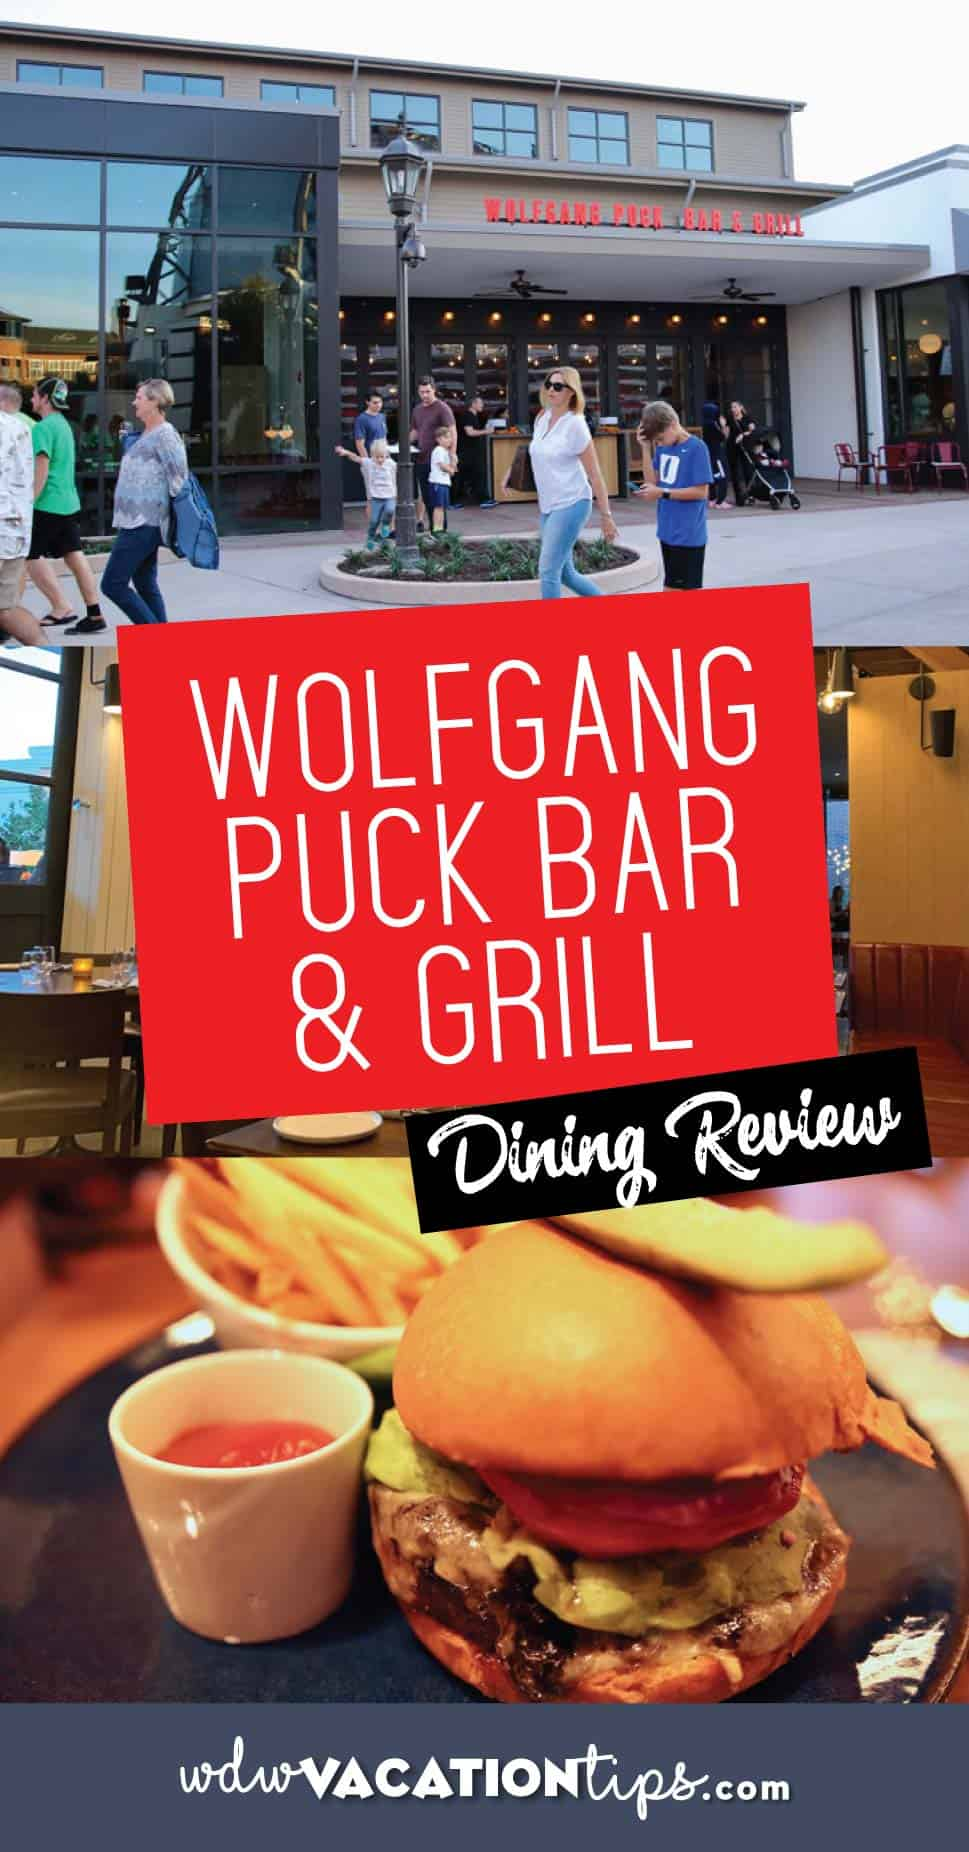 Wolfgang Puck Bar and Grill Dining Review